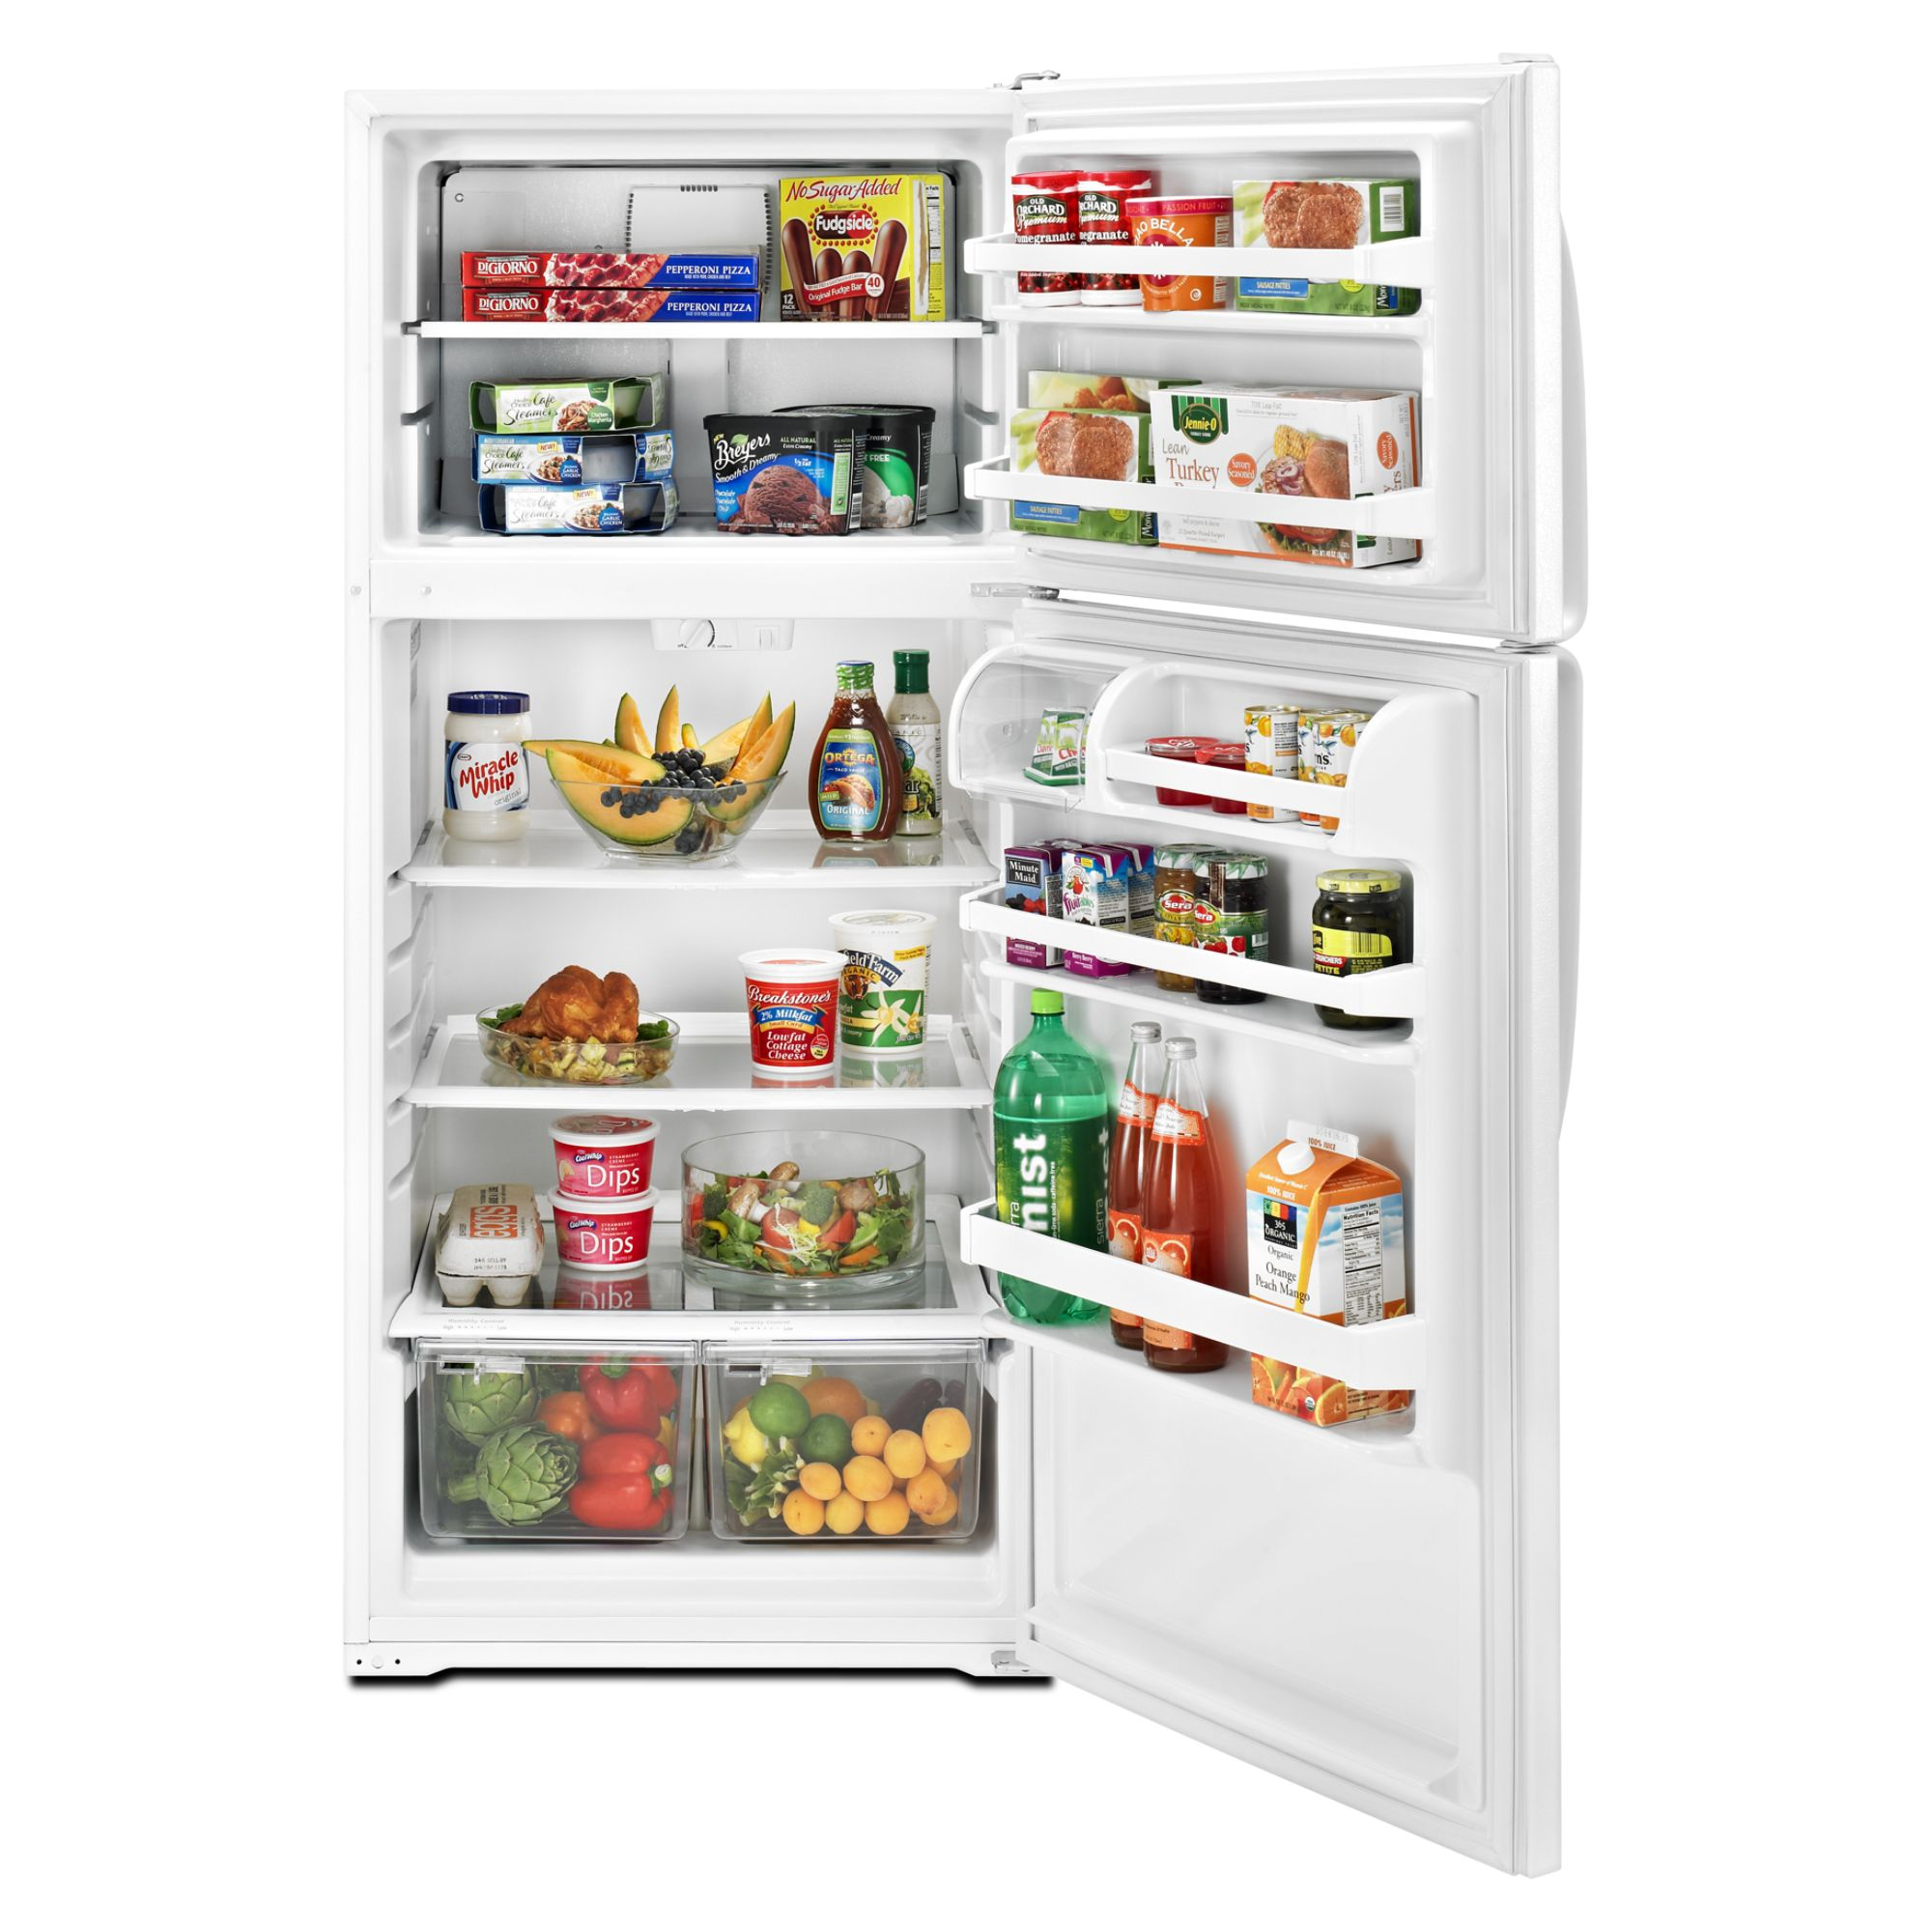 Whirlpool 14.4 cu. ft. Top-Freezer Refrigerator - White